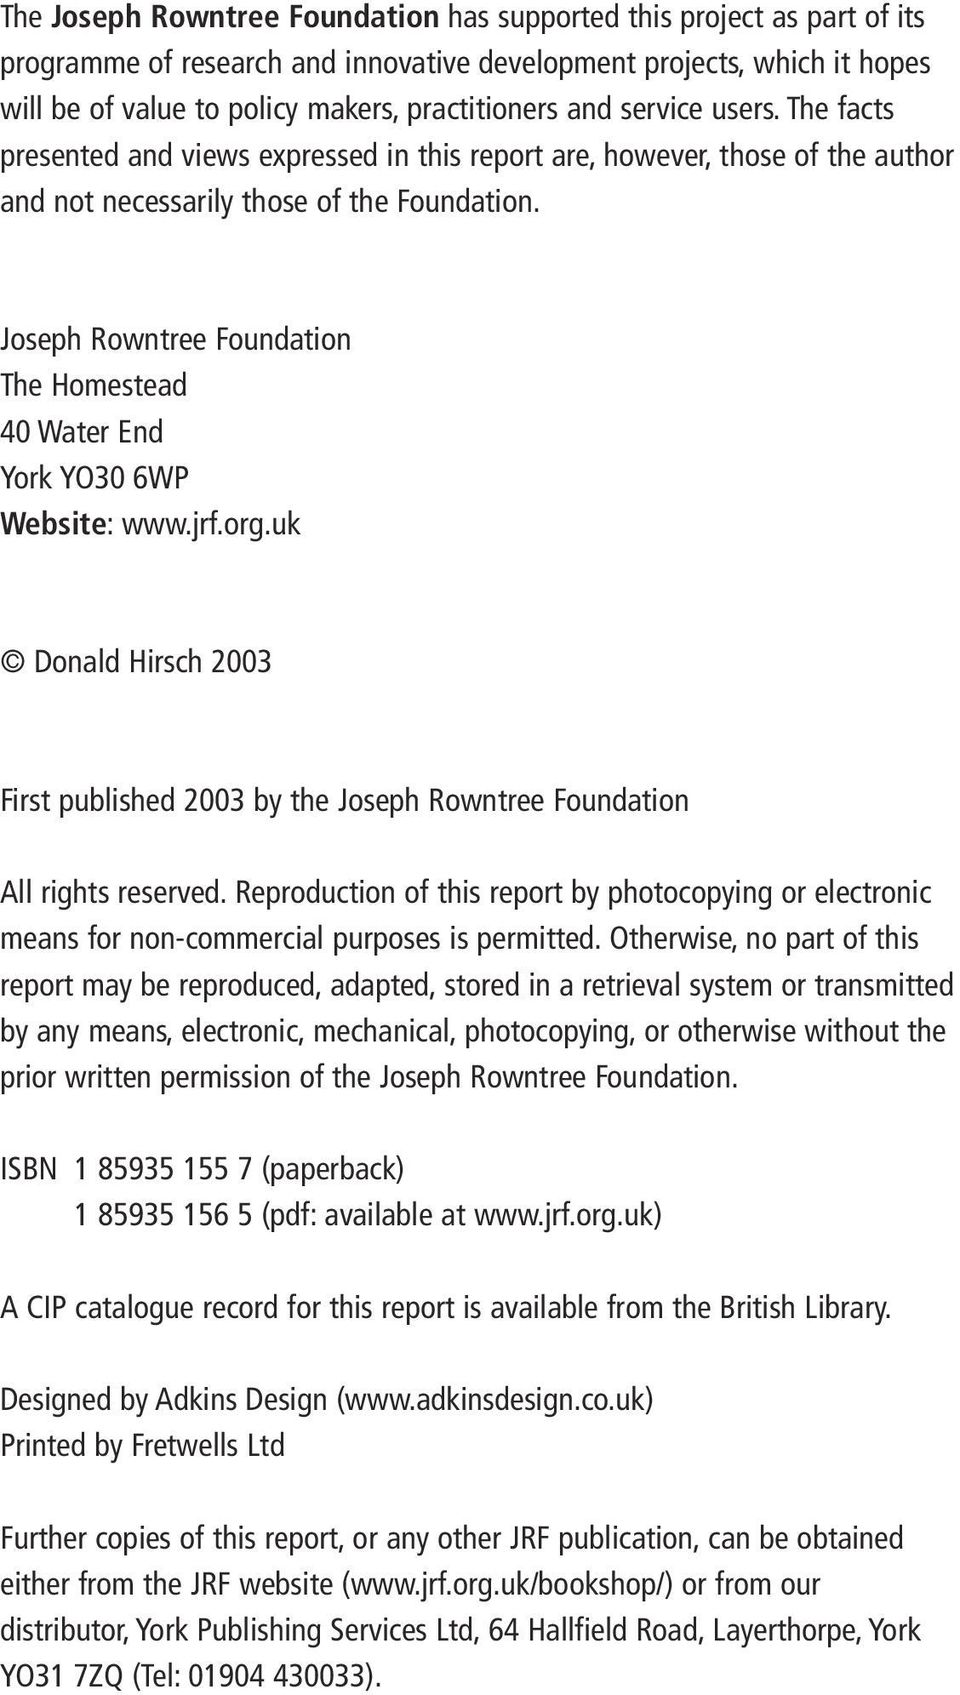 Joseph Rowntree Foundation The Homestead 40 Water End York YO30 6WP Website: www.jrf.org.uk Donald Hirsch 2003 First published 2003 by the Joseph Rowntree Foundation All rights reserved.